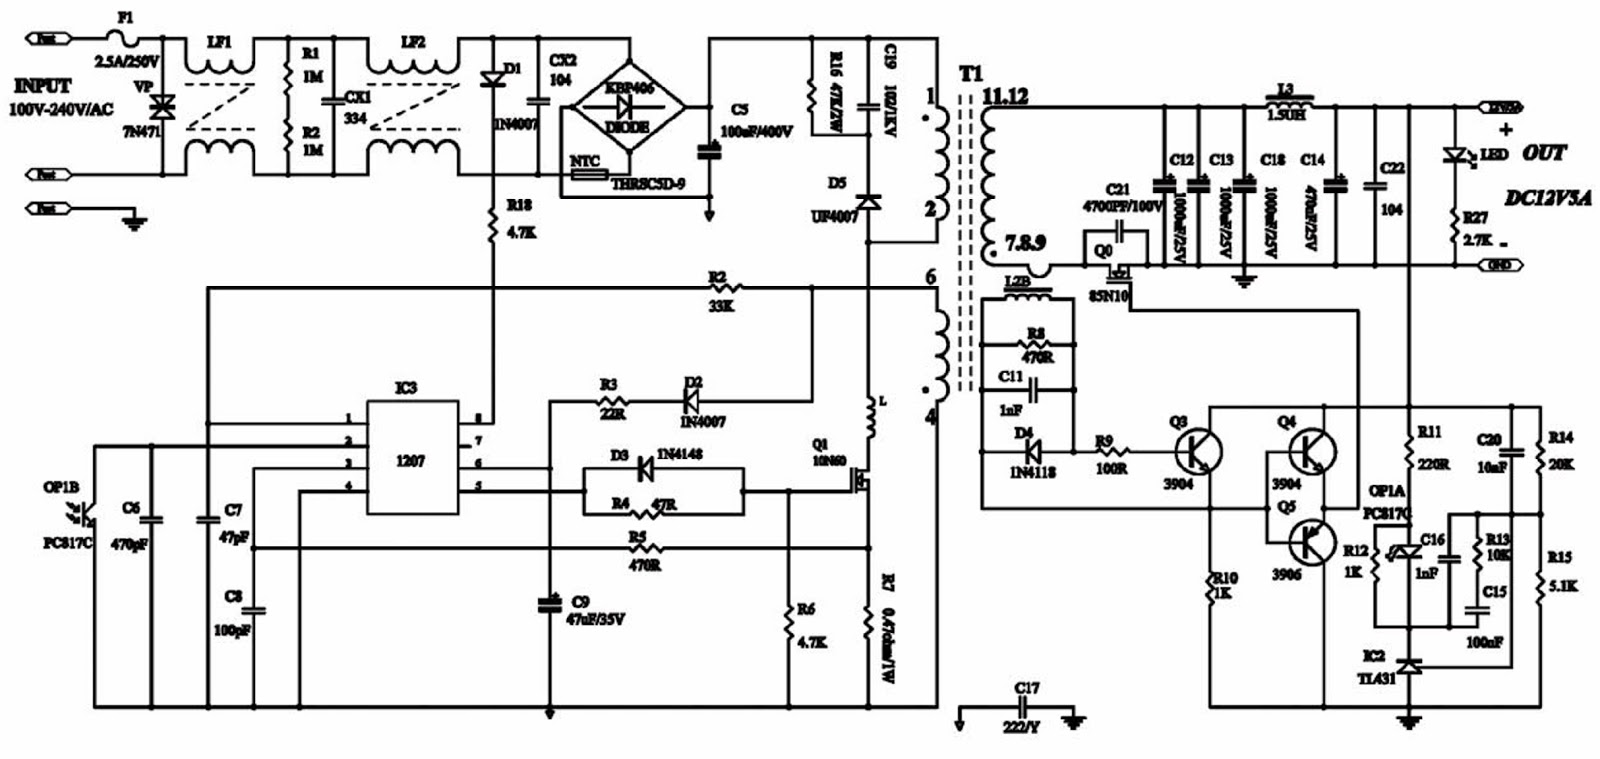 tv schematic circuit diagram wiring data rh unroutine co Black and White Architecture Diagram block diagram of black and white tv receiver